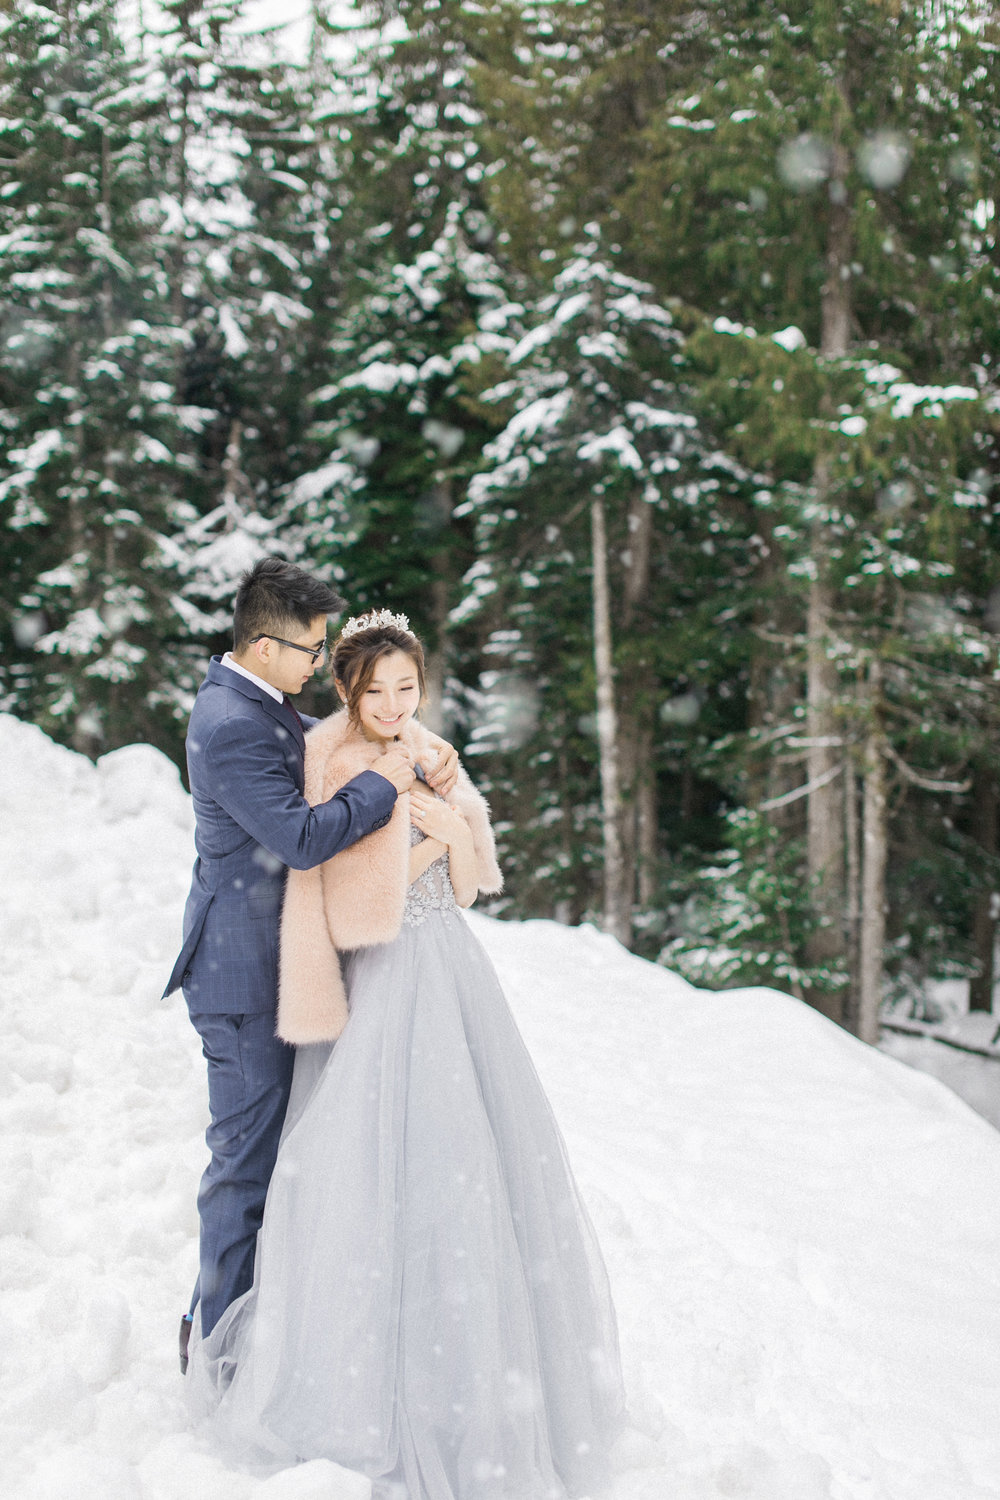 20170225LeslyJerryPreWedding-24 copy.jpg